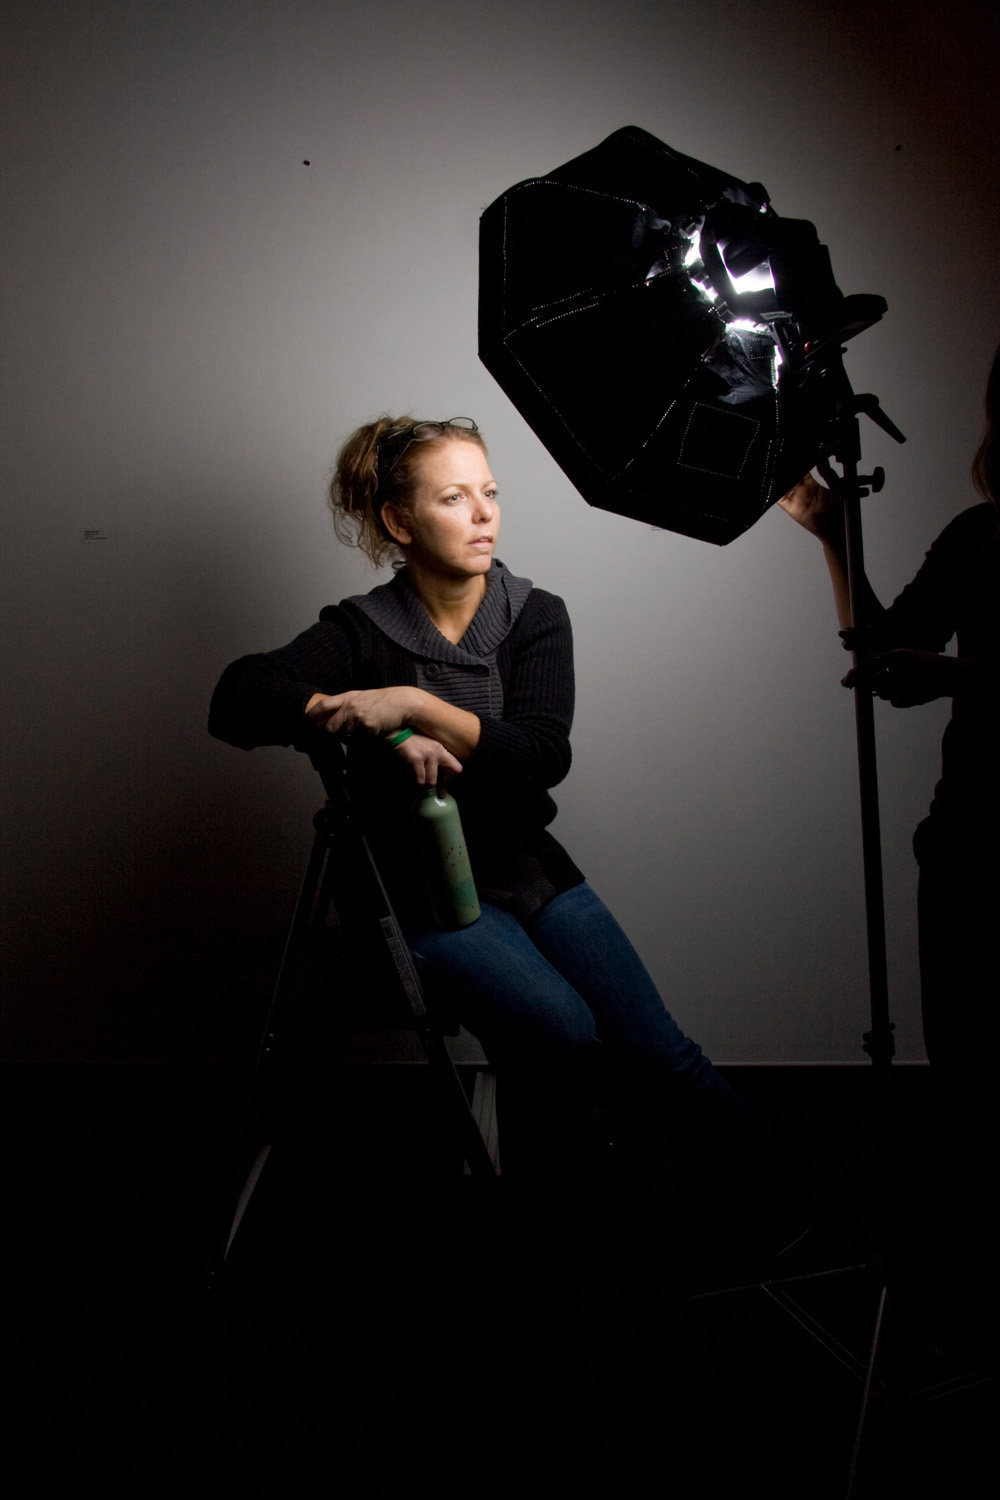 Lighting Workshop, Photographic Resource Center